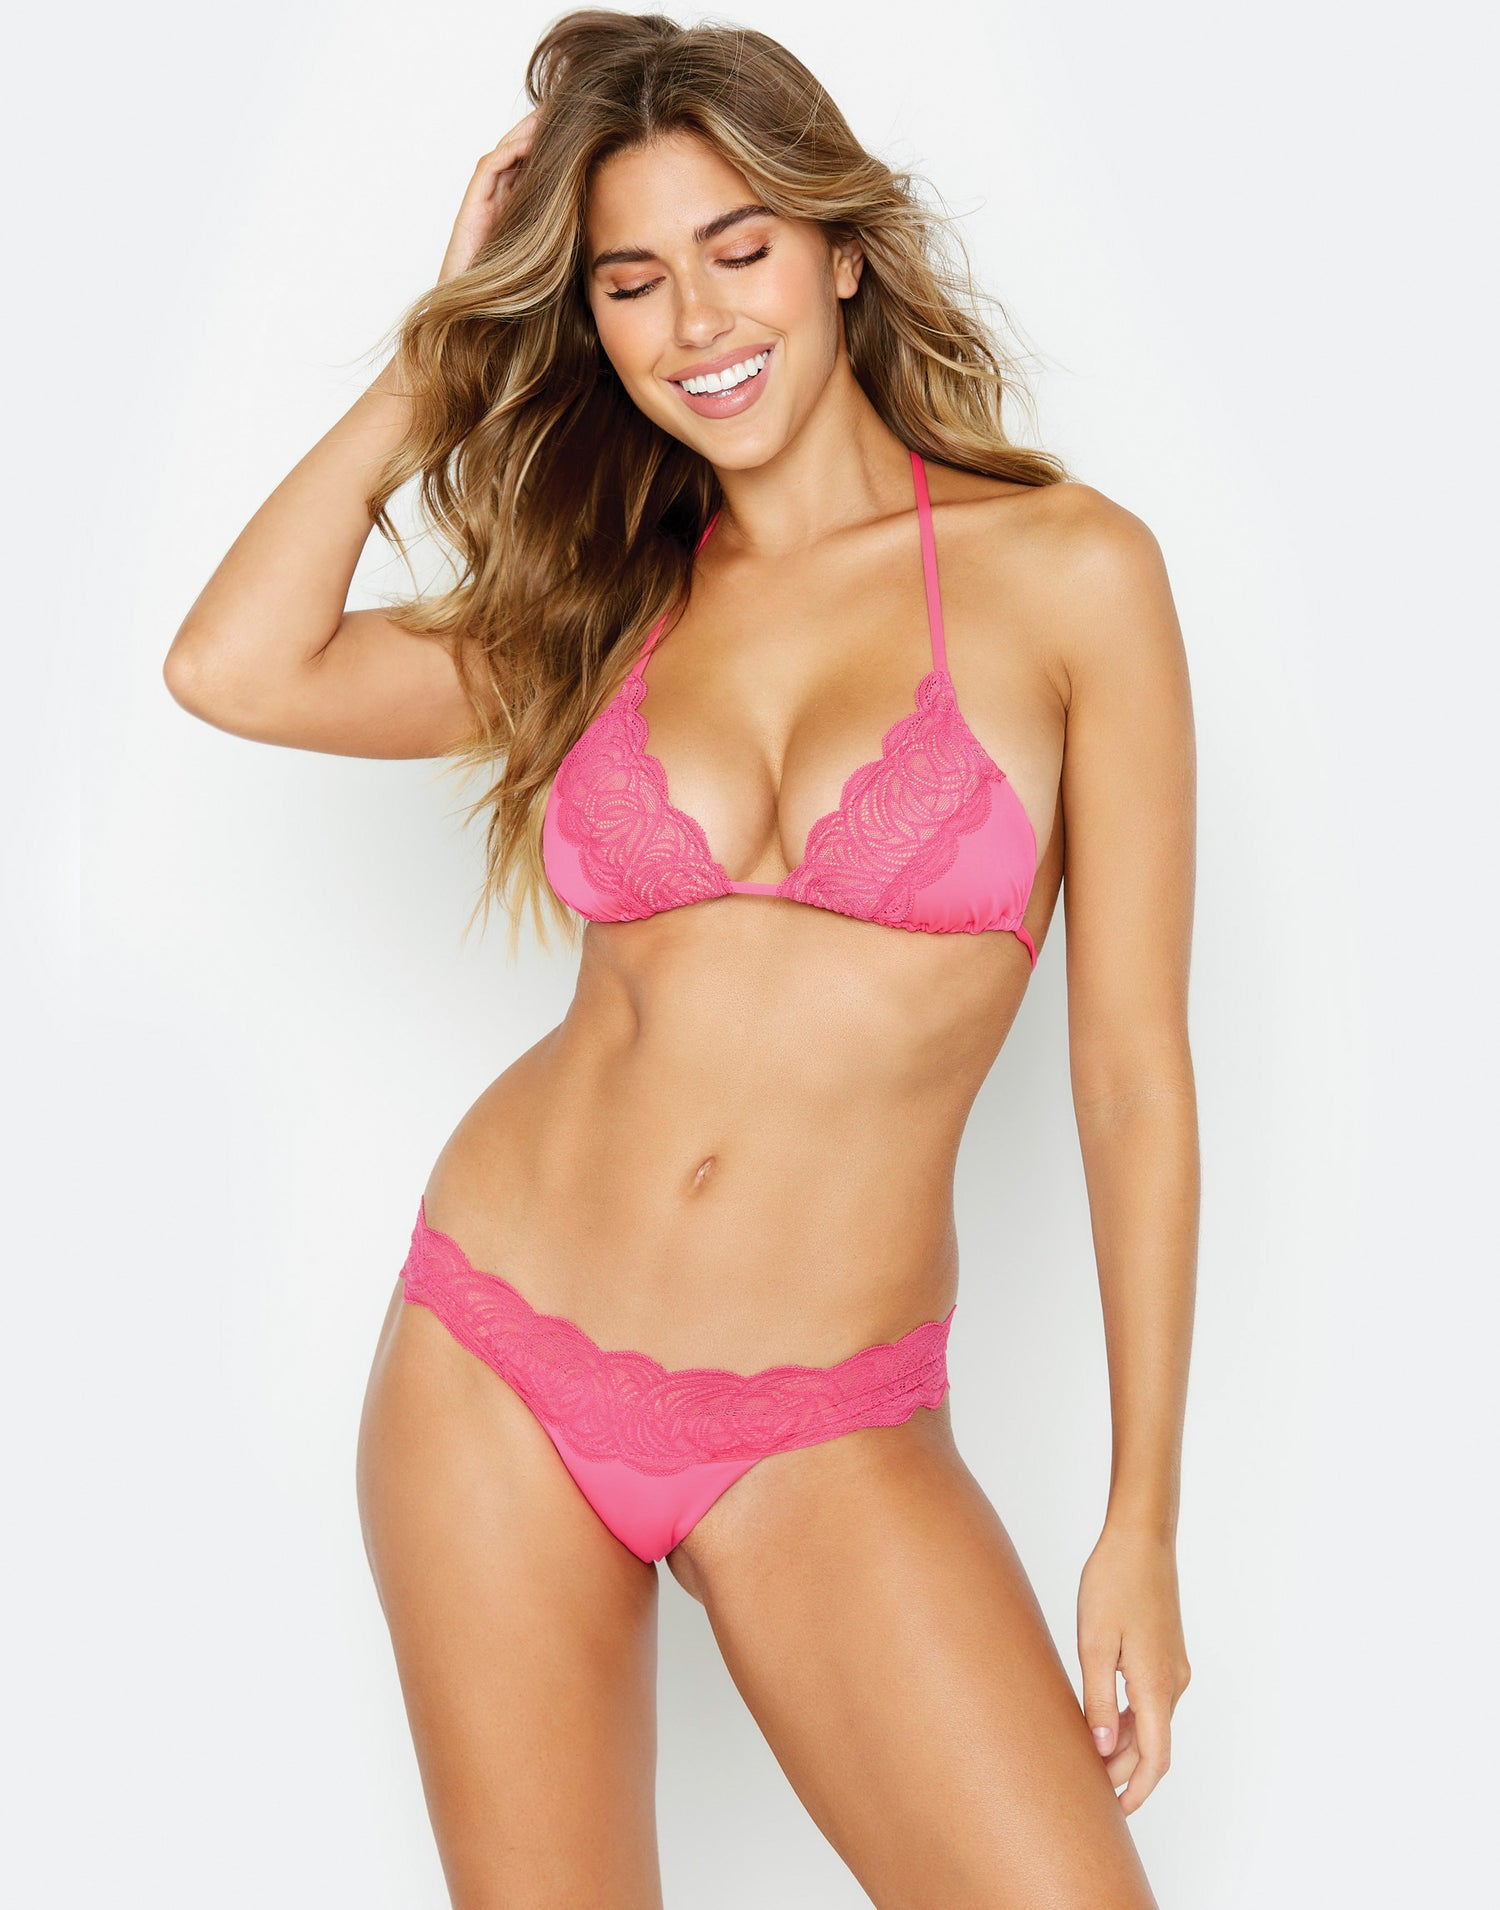 Under Your Spell Triangle Bikini Top in Barbie Pink with Lace - front view